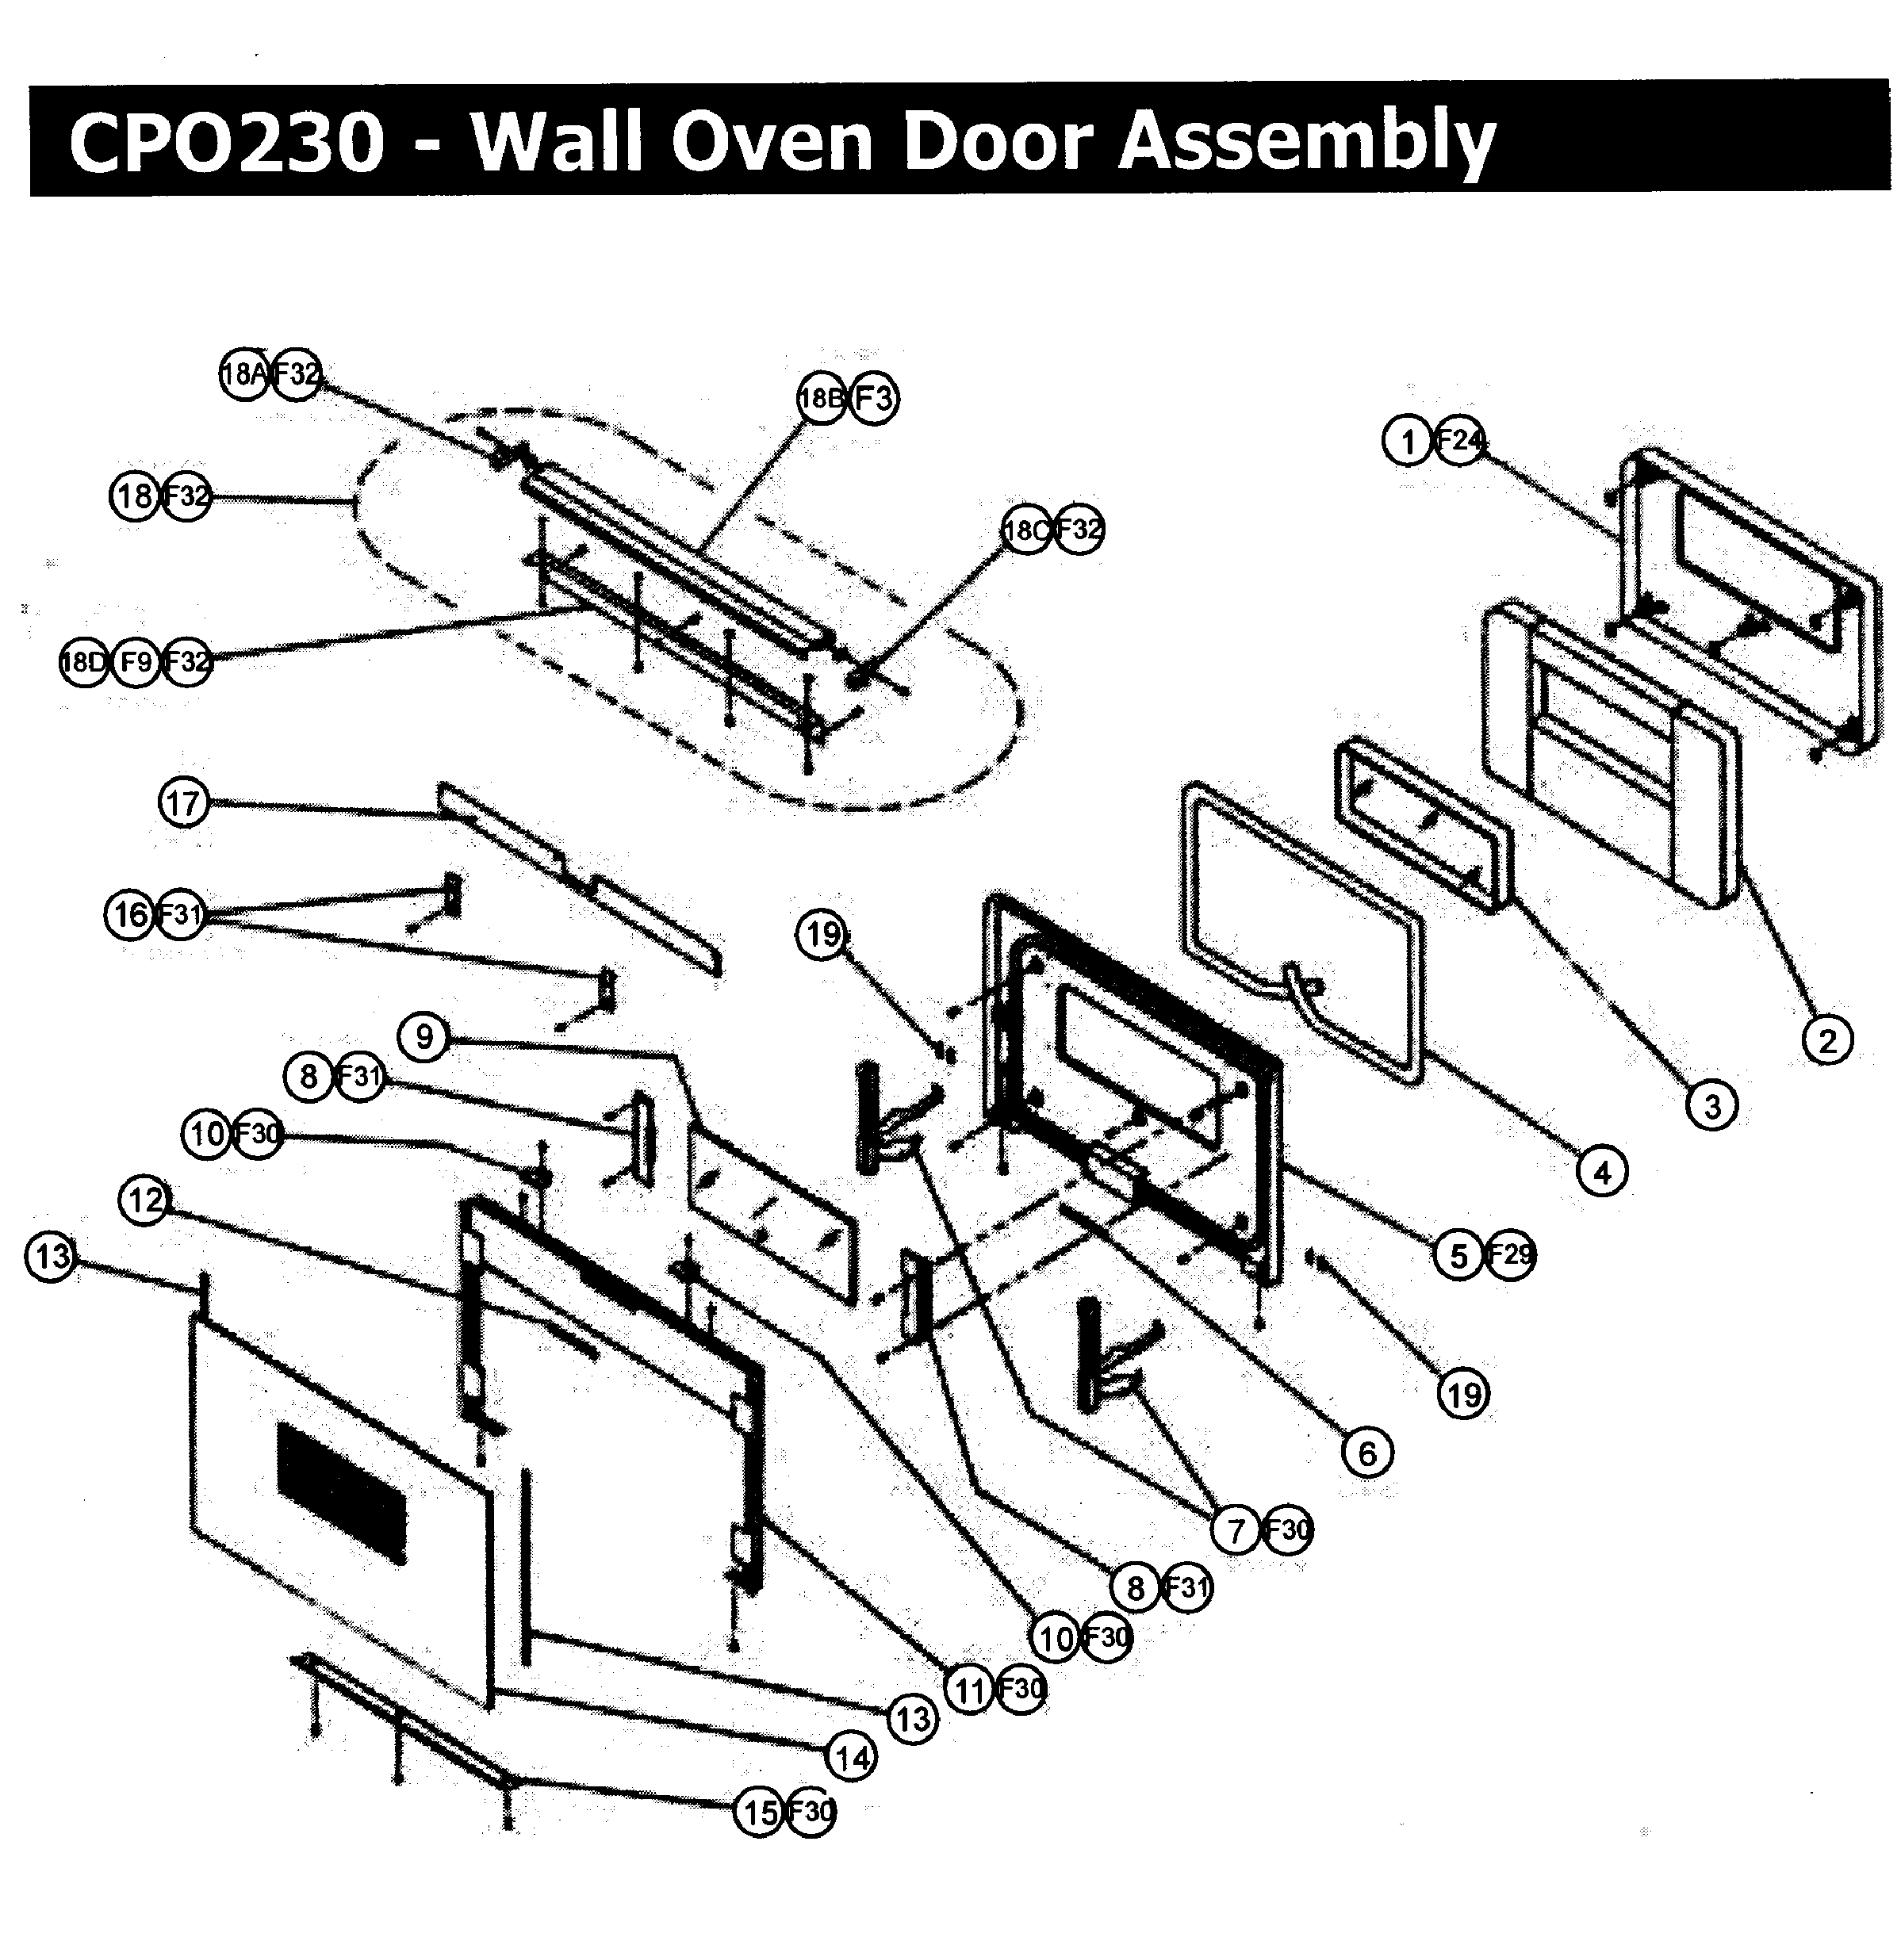 wiring diagram for dacor oven 18 9 batarms game de 71 El Camino Wiring-Diagram dacor cpo230 wall oven timer stove clocks and appliance timers rh appliancetimers ca dacor oven problem codes dacor ovens repair